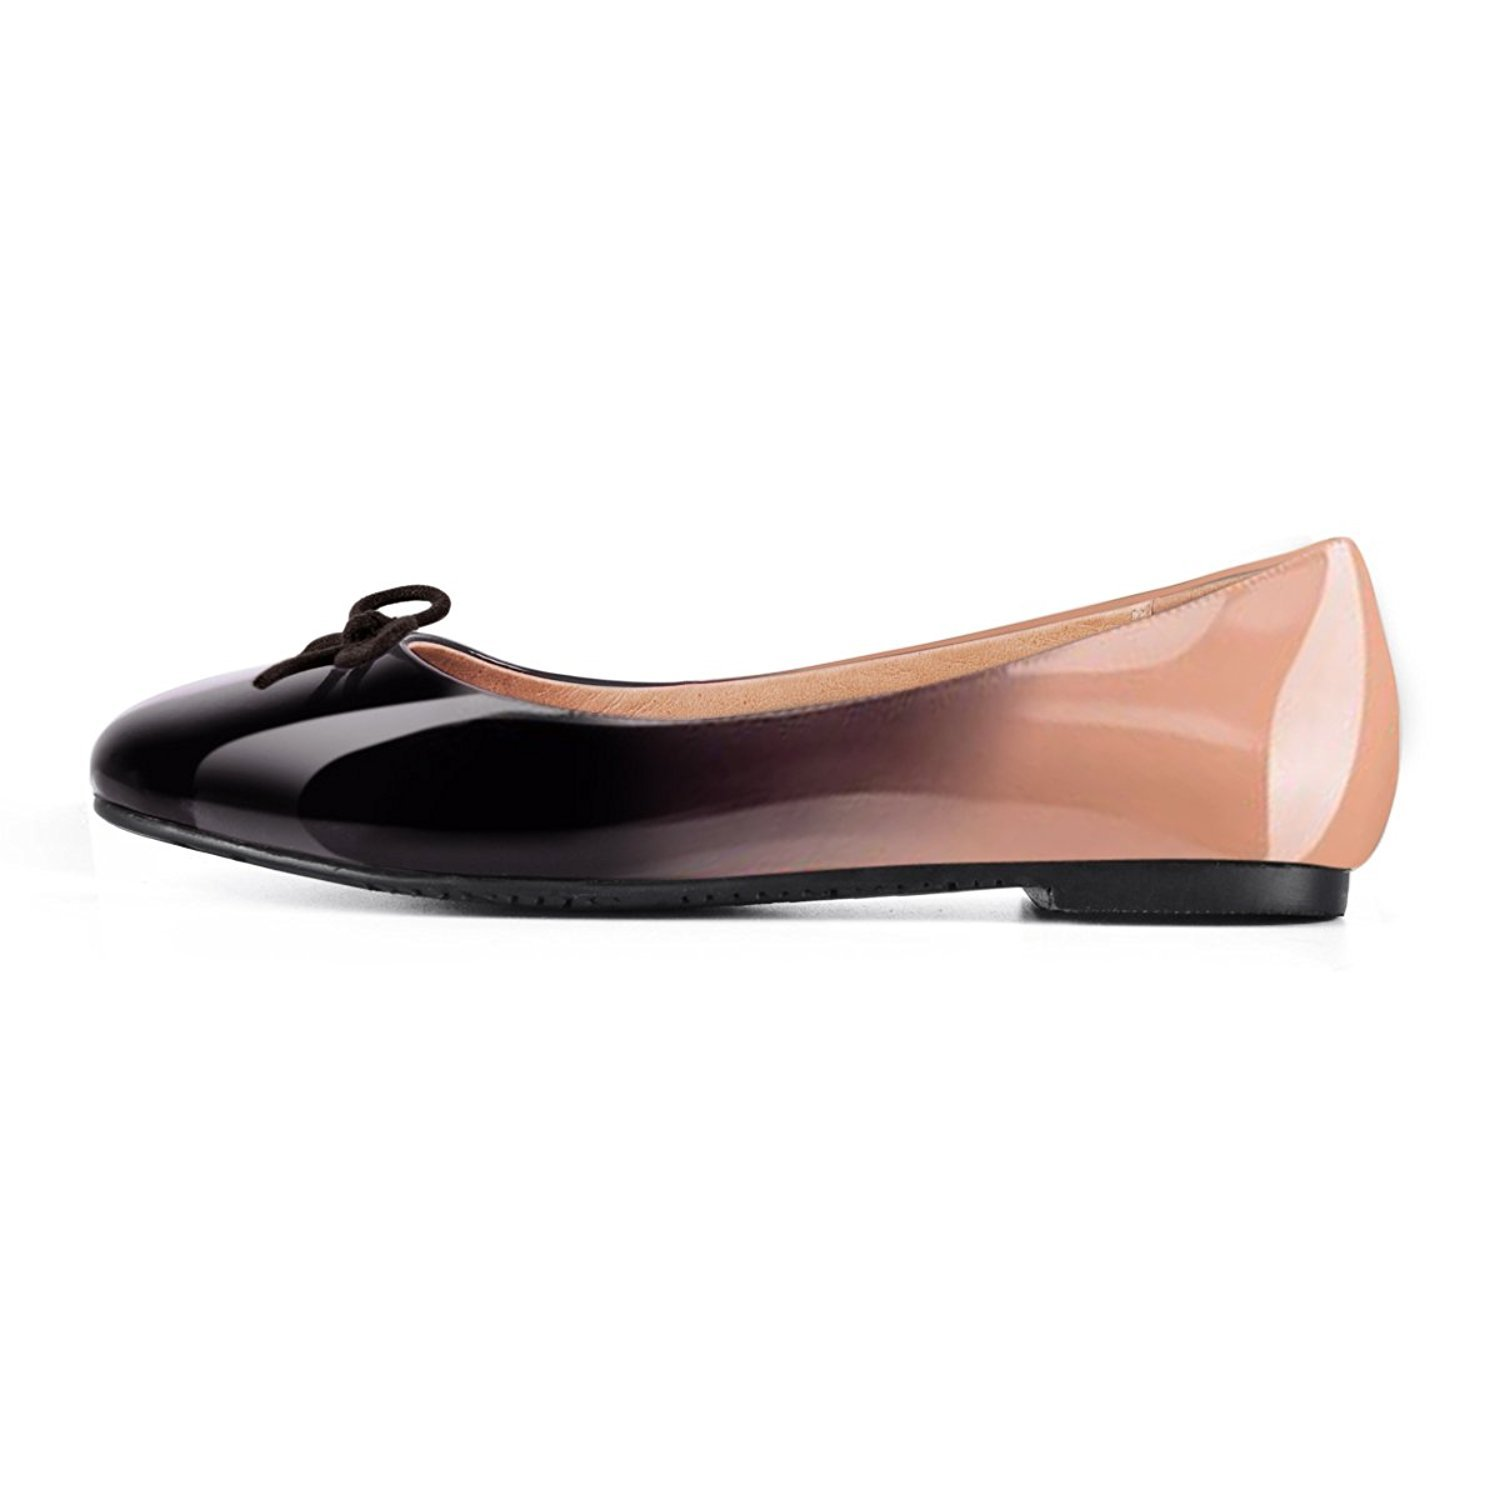 Joogo Women Round Toe Ballet Flats with Bow Tie Slip On Casual Comfortable Shoes B0788HVJ9Q 5 B(M) US|Black to Nude